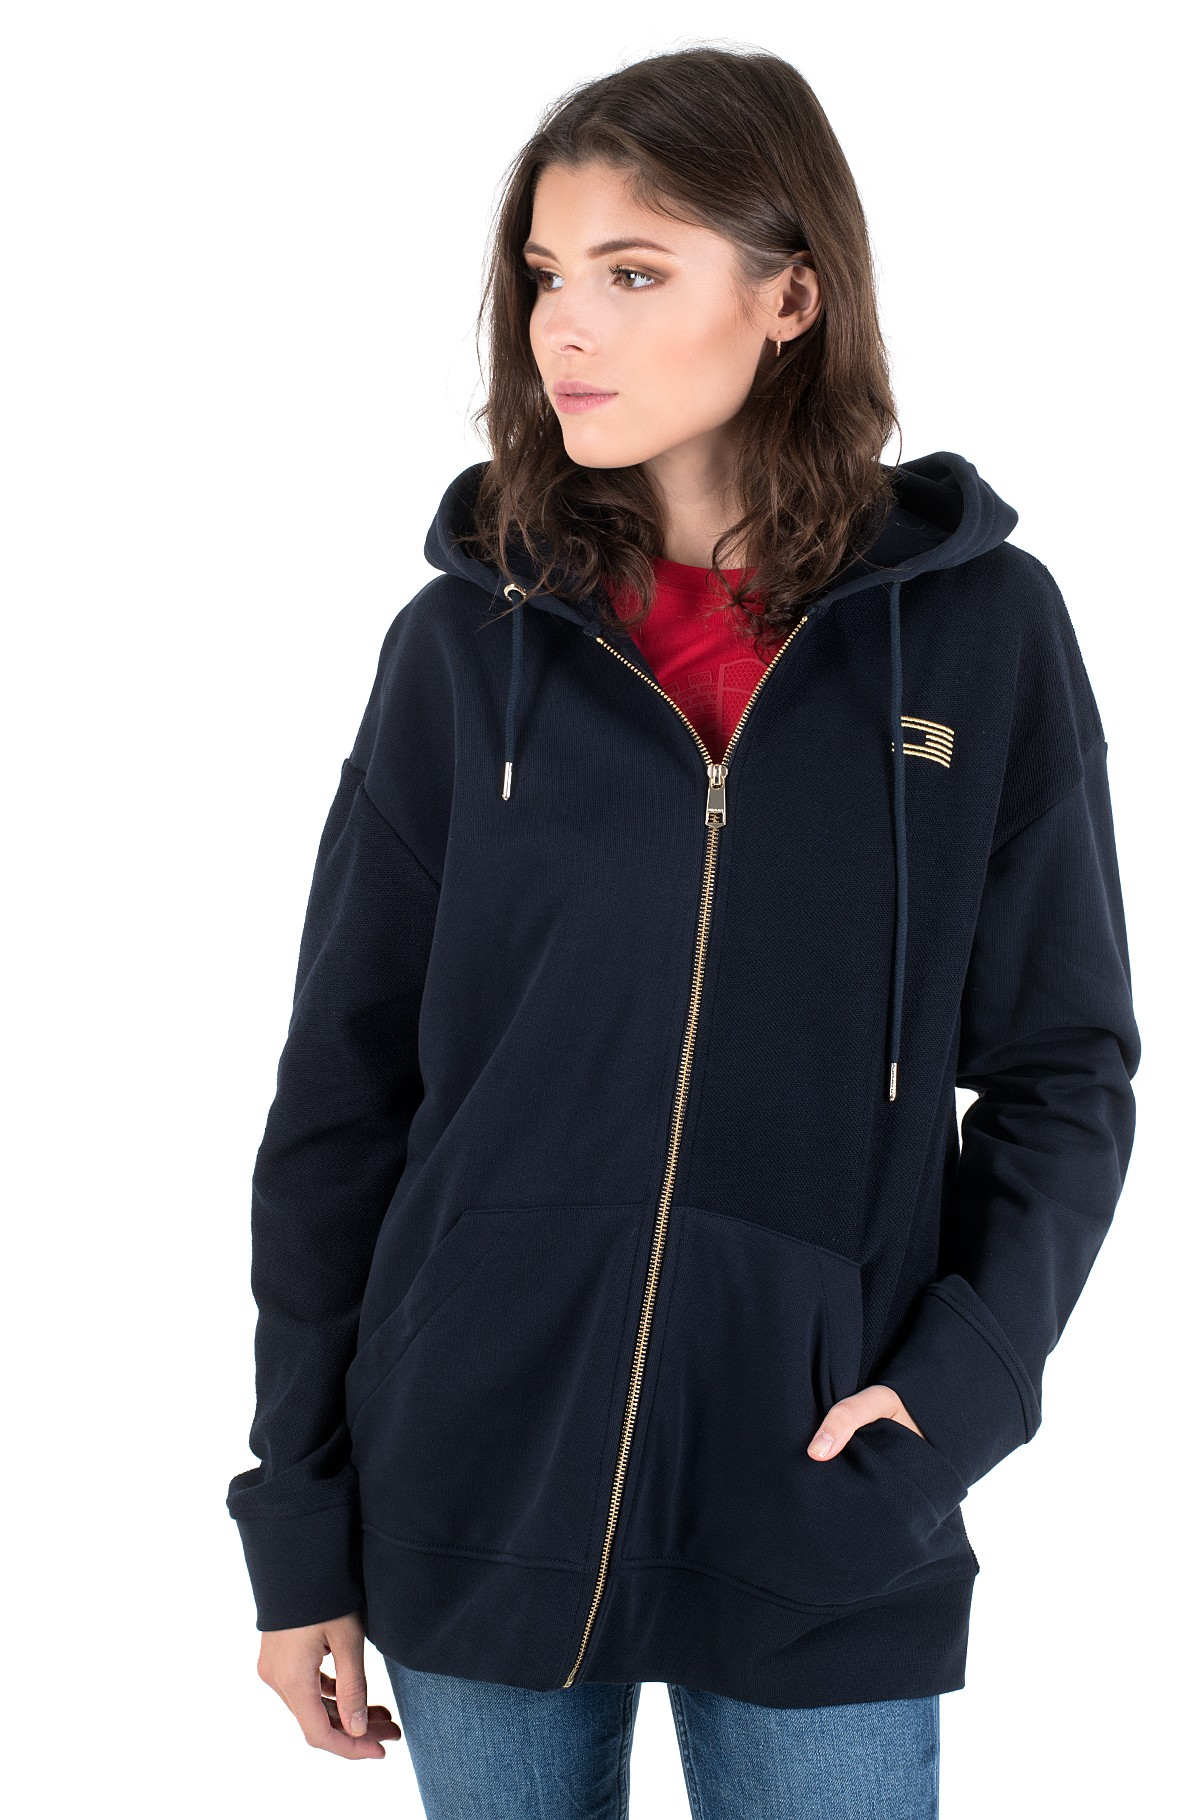 Dressipluus ICON RELAXED ZIP THROUGH HOODIE-full-1